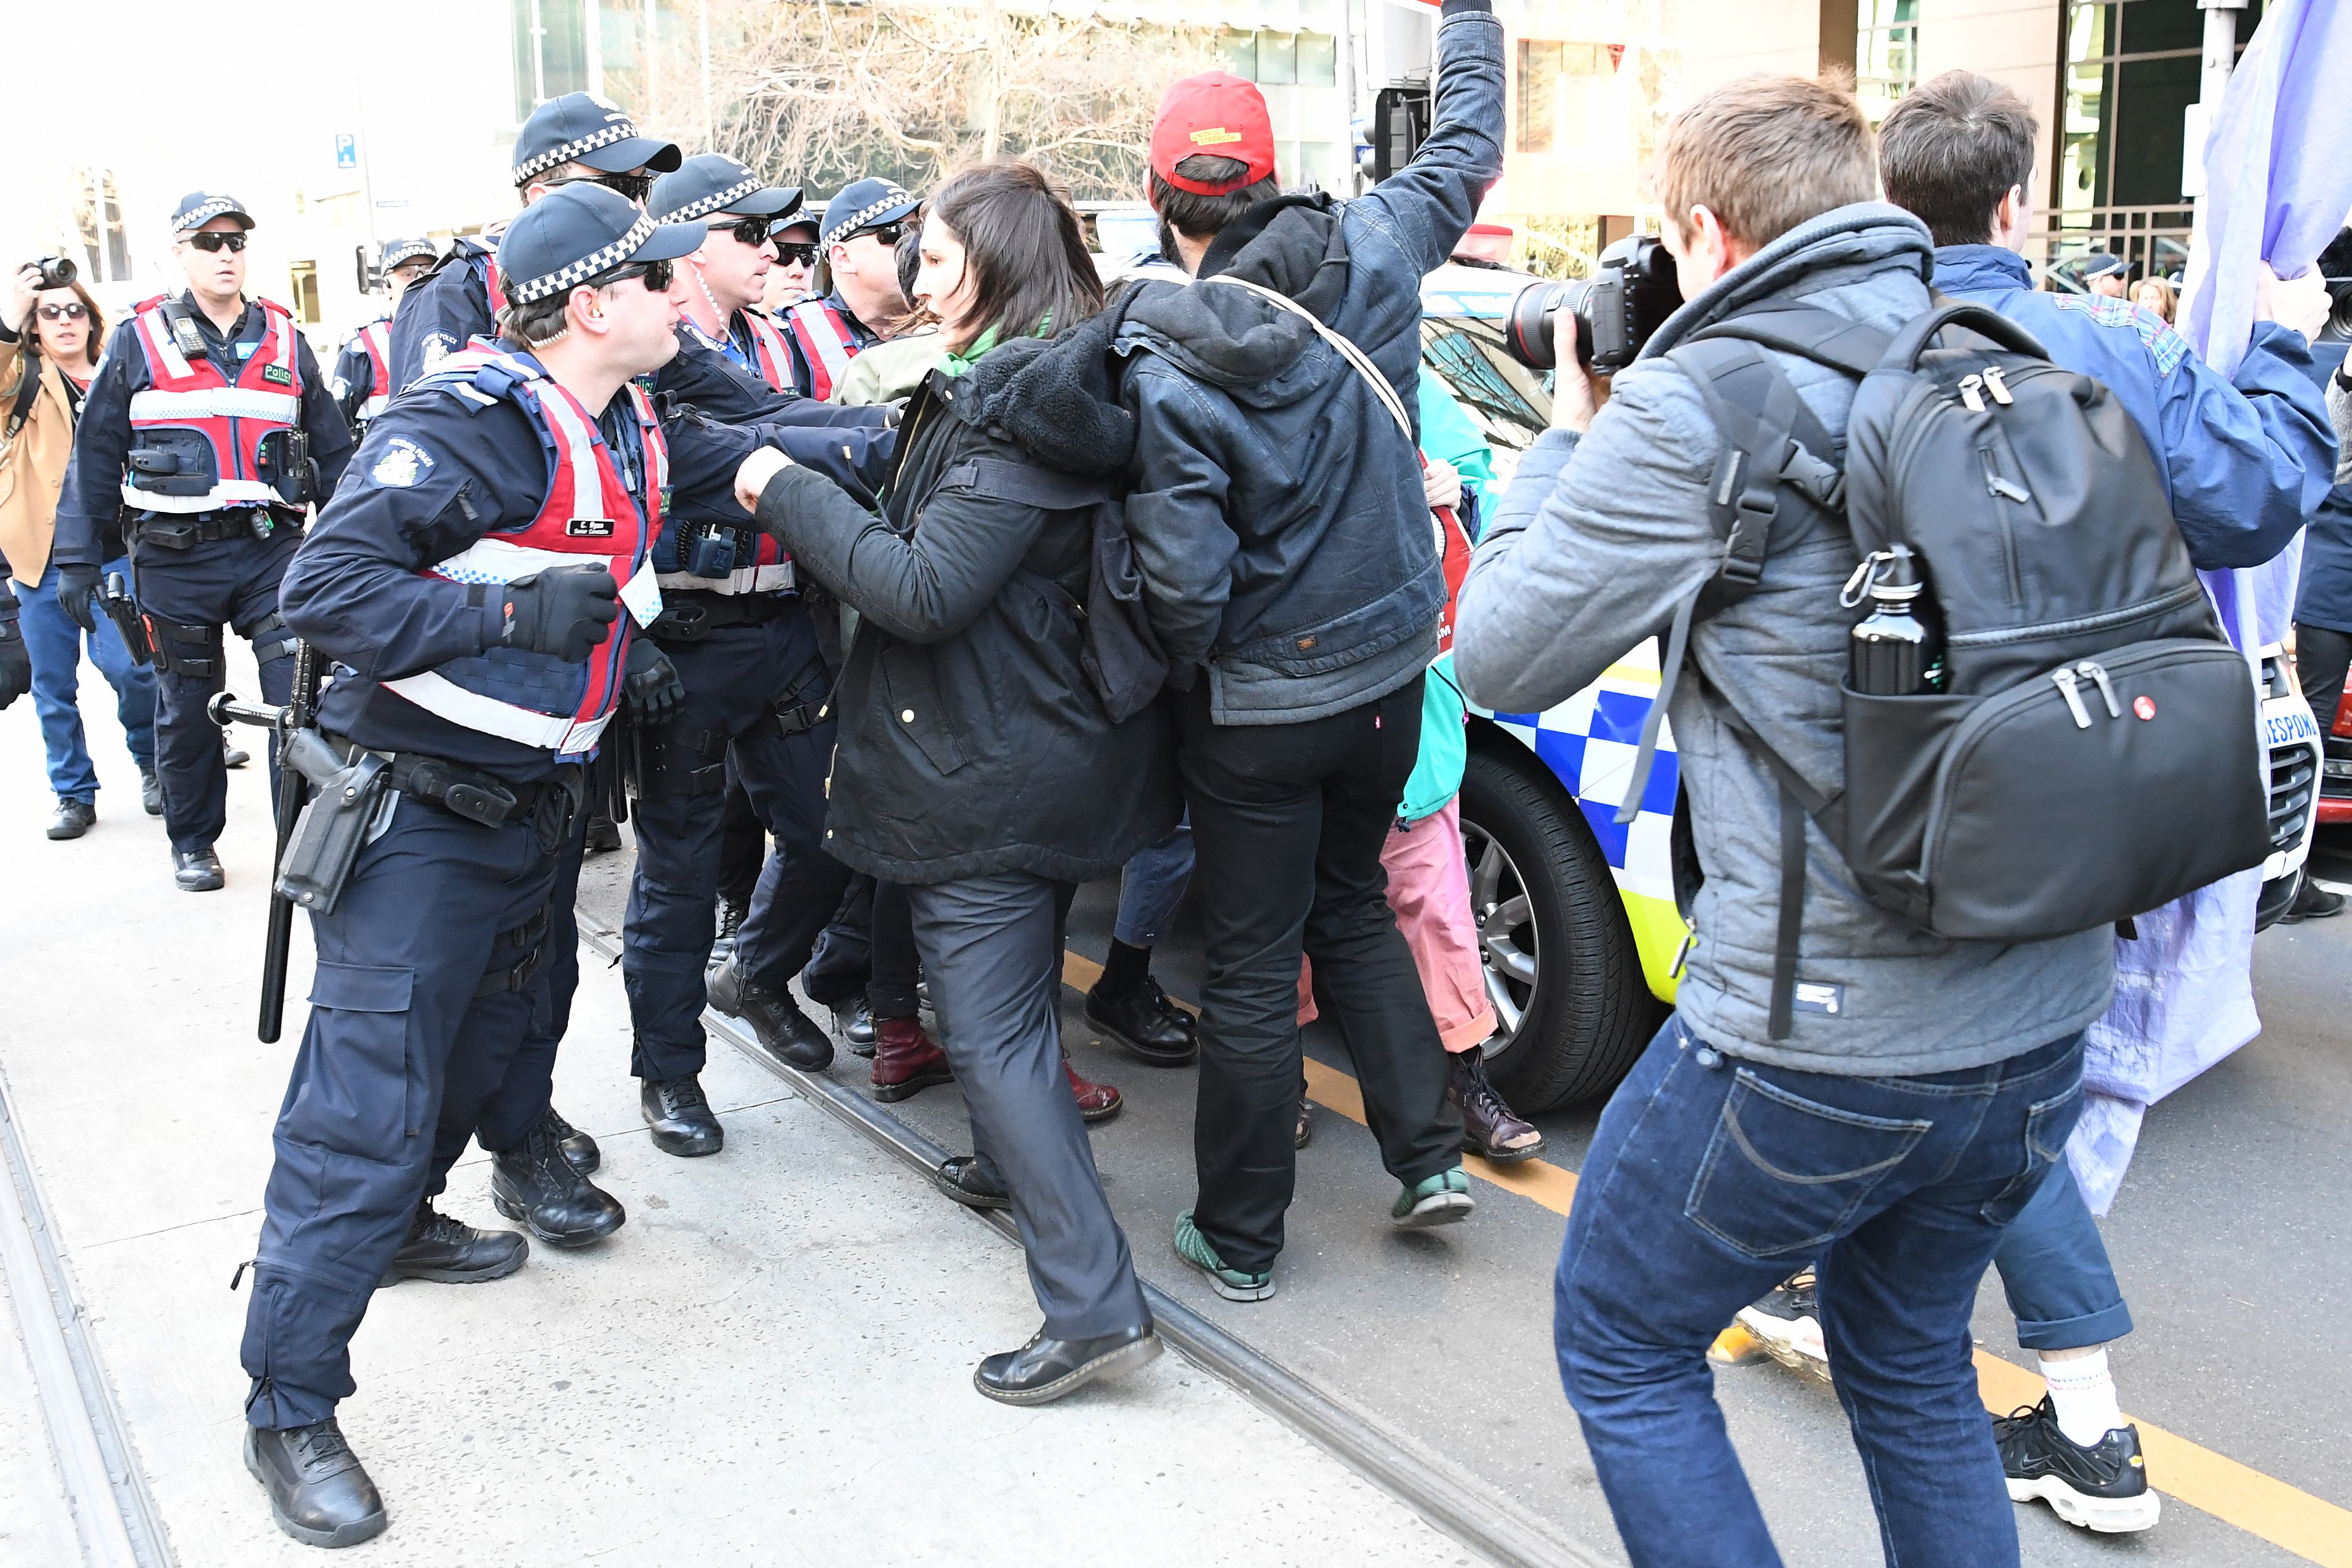 Members of the rally clashed with a wall of police officers. (AAP)